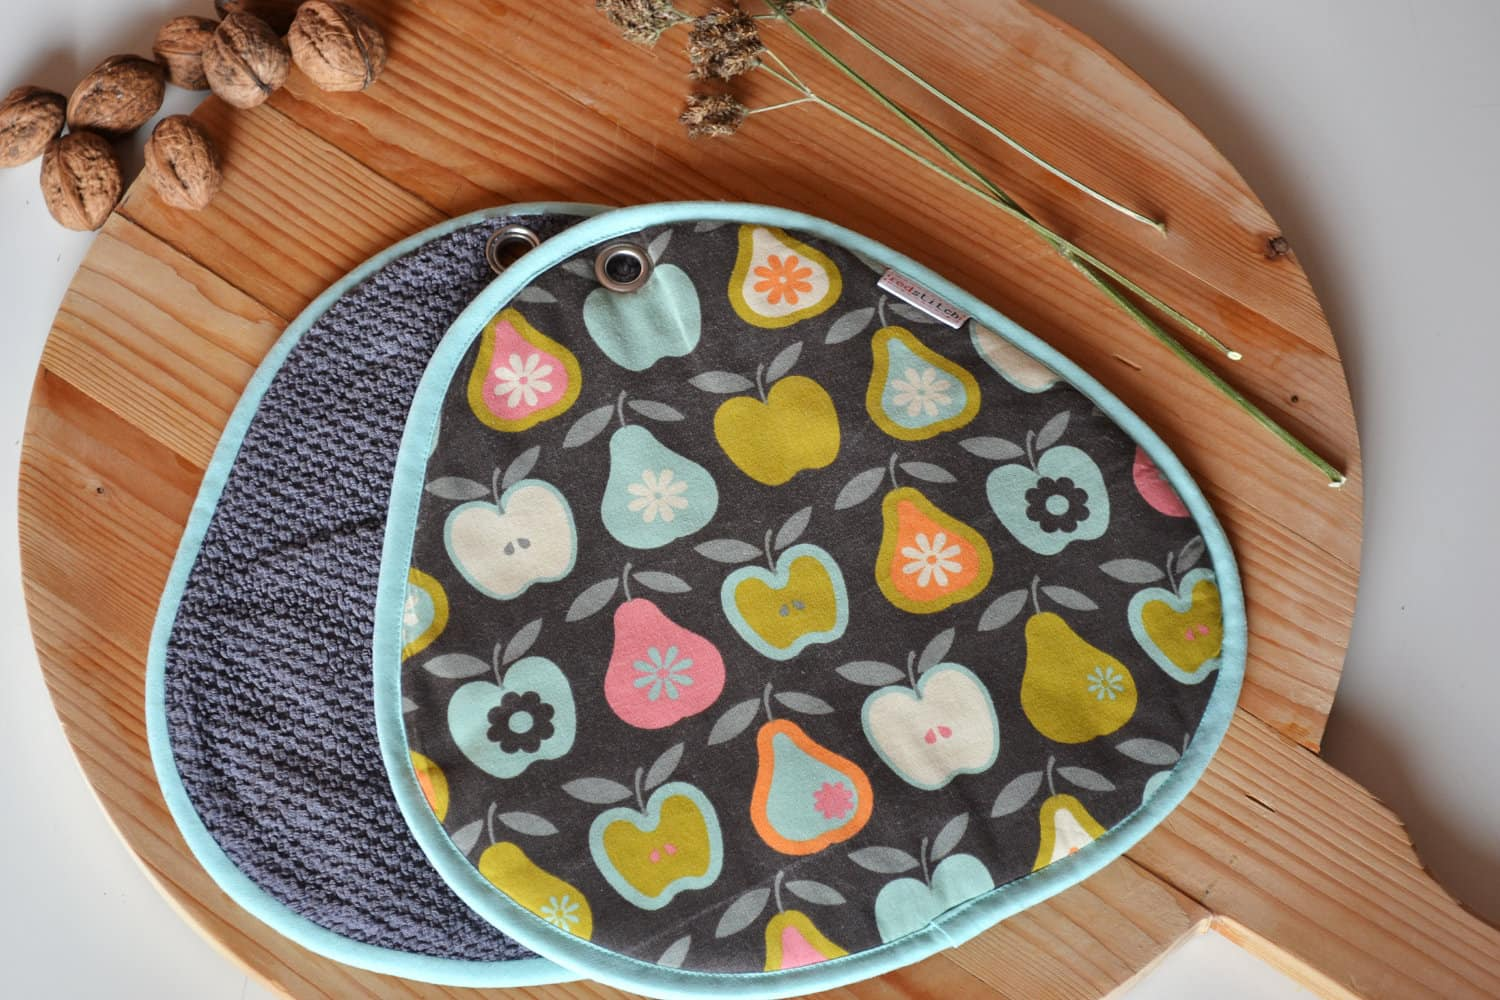 Red Stitch: Super Cute Handmade Potholders from Holland: gallery image 8